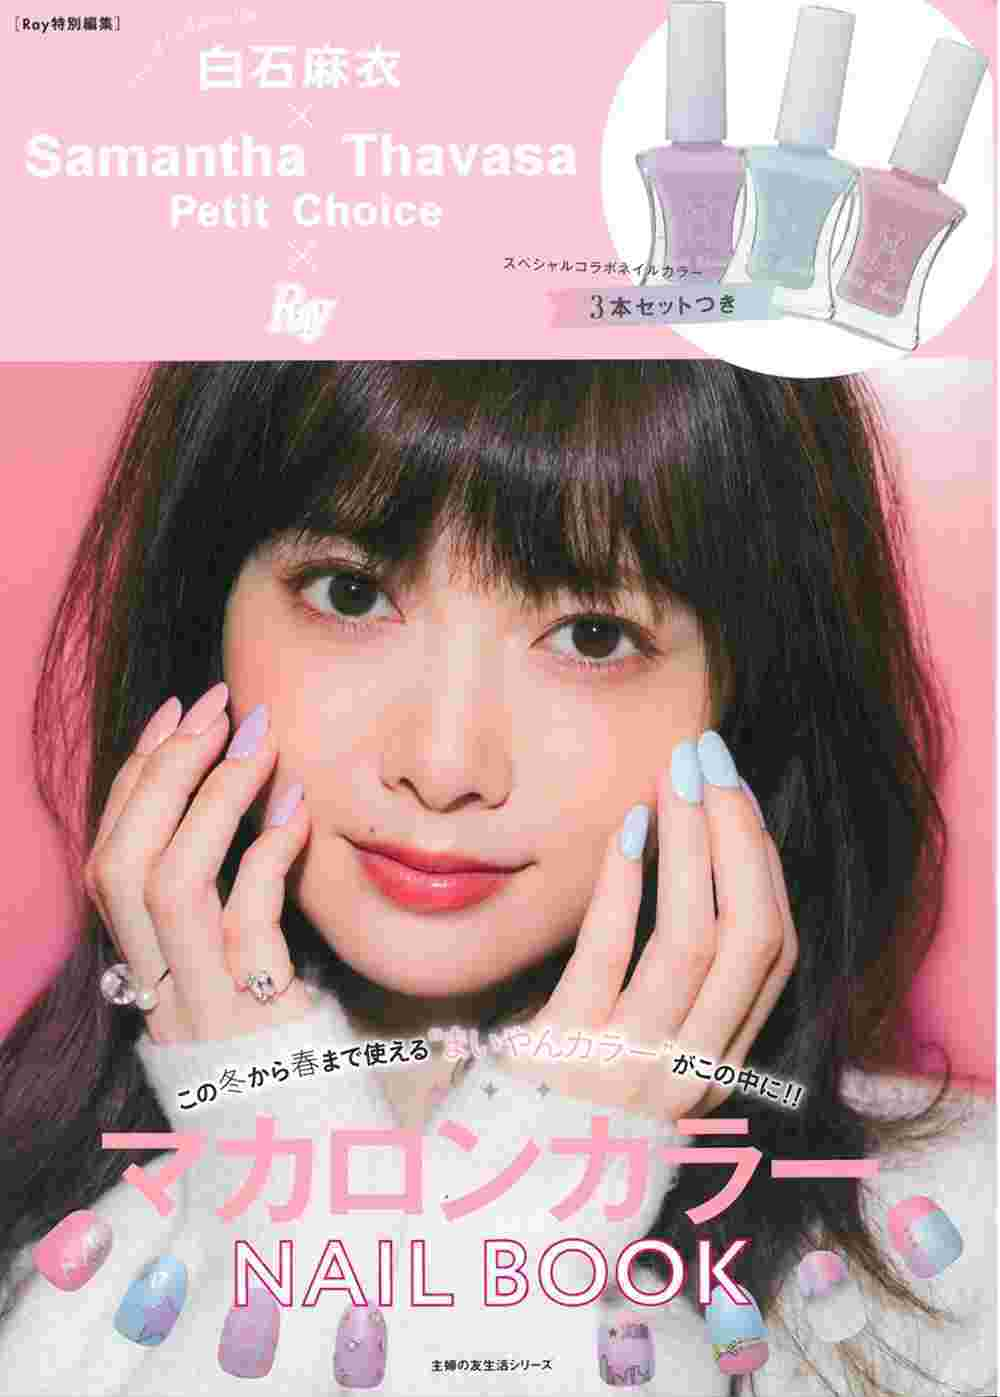 白石麻衣×Samantha Thavasa Petit Choice×Ray指甲彩繪特刊: